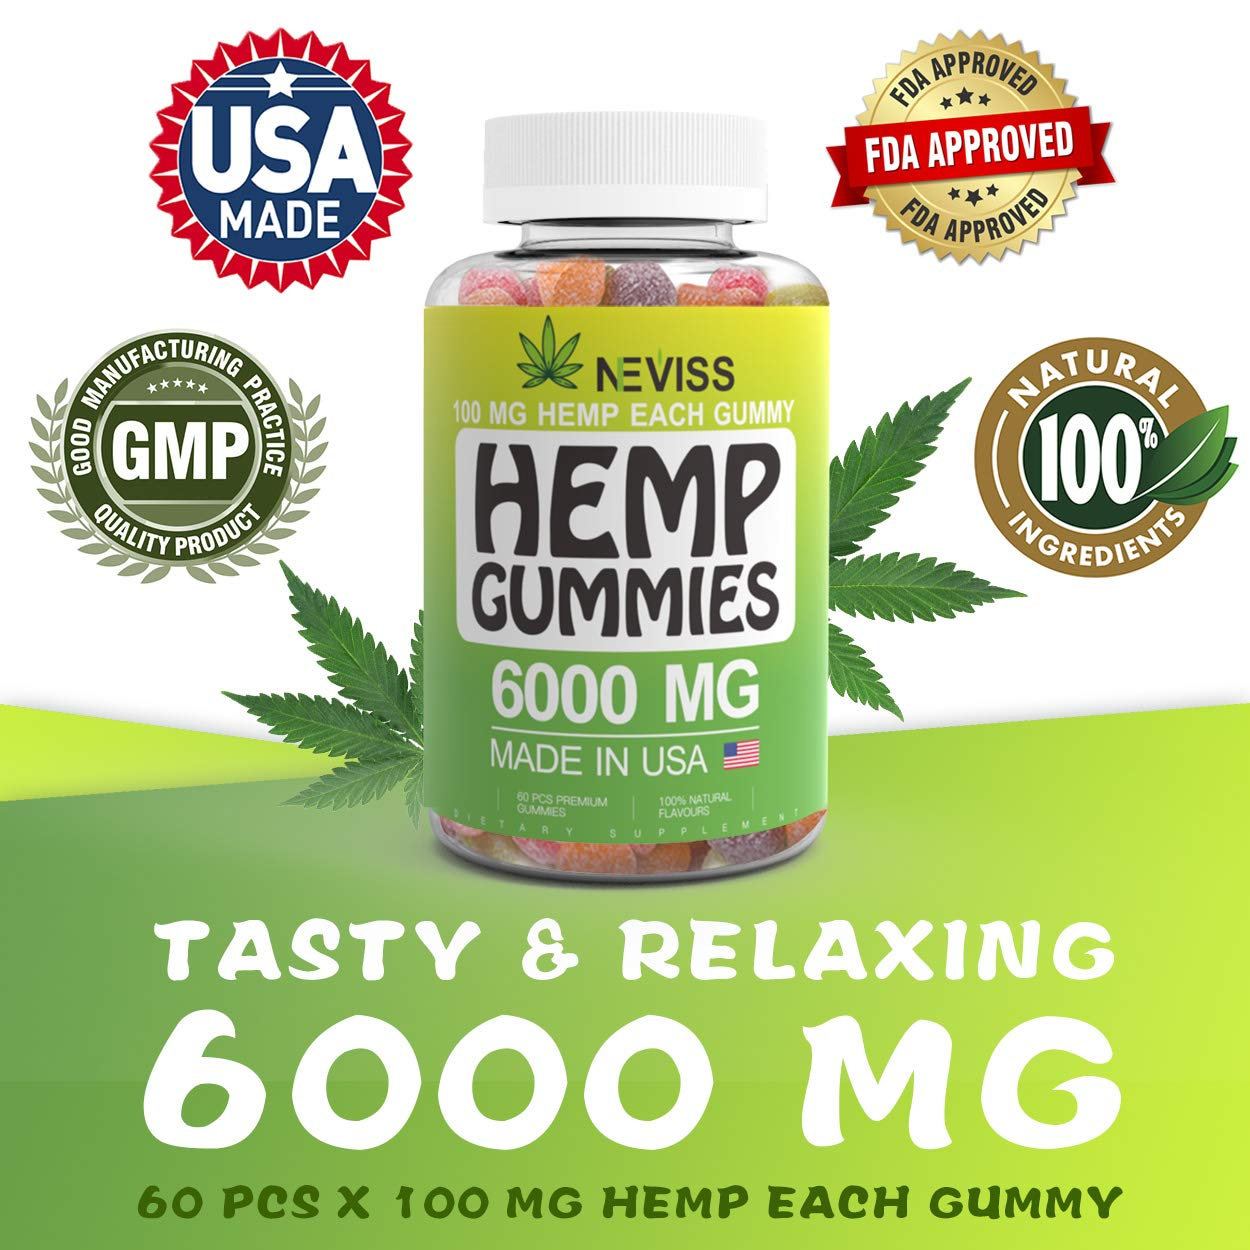 Omega 3, 6 & 9 Gummies 6000 MG - Natural Premium Herbal Extract - Omega Organic Gummies - Relaxing, Pain Relief, Stress & Anxiety Relief - Made in USA